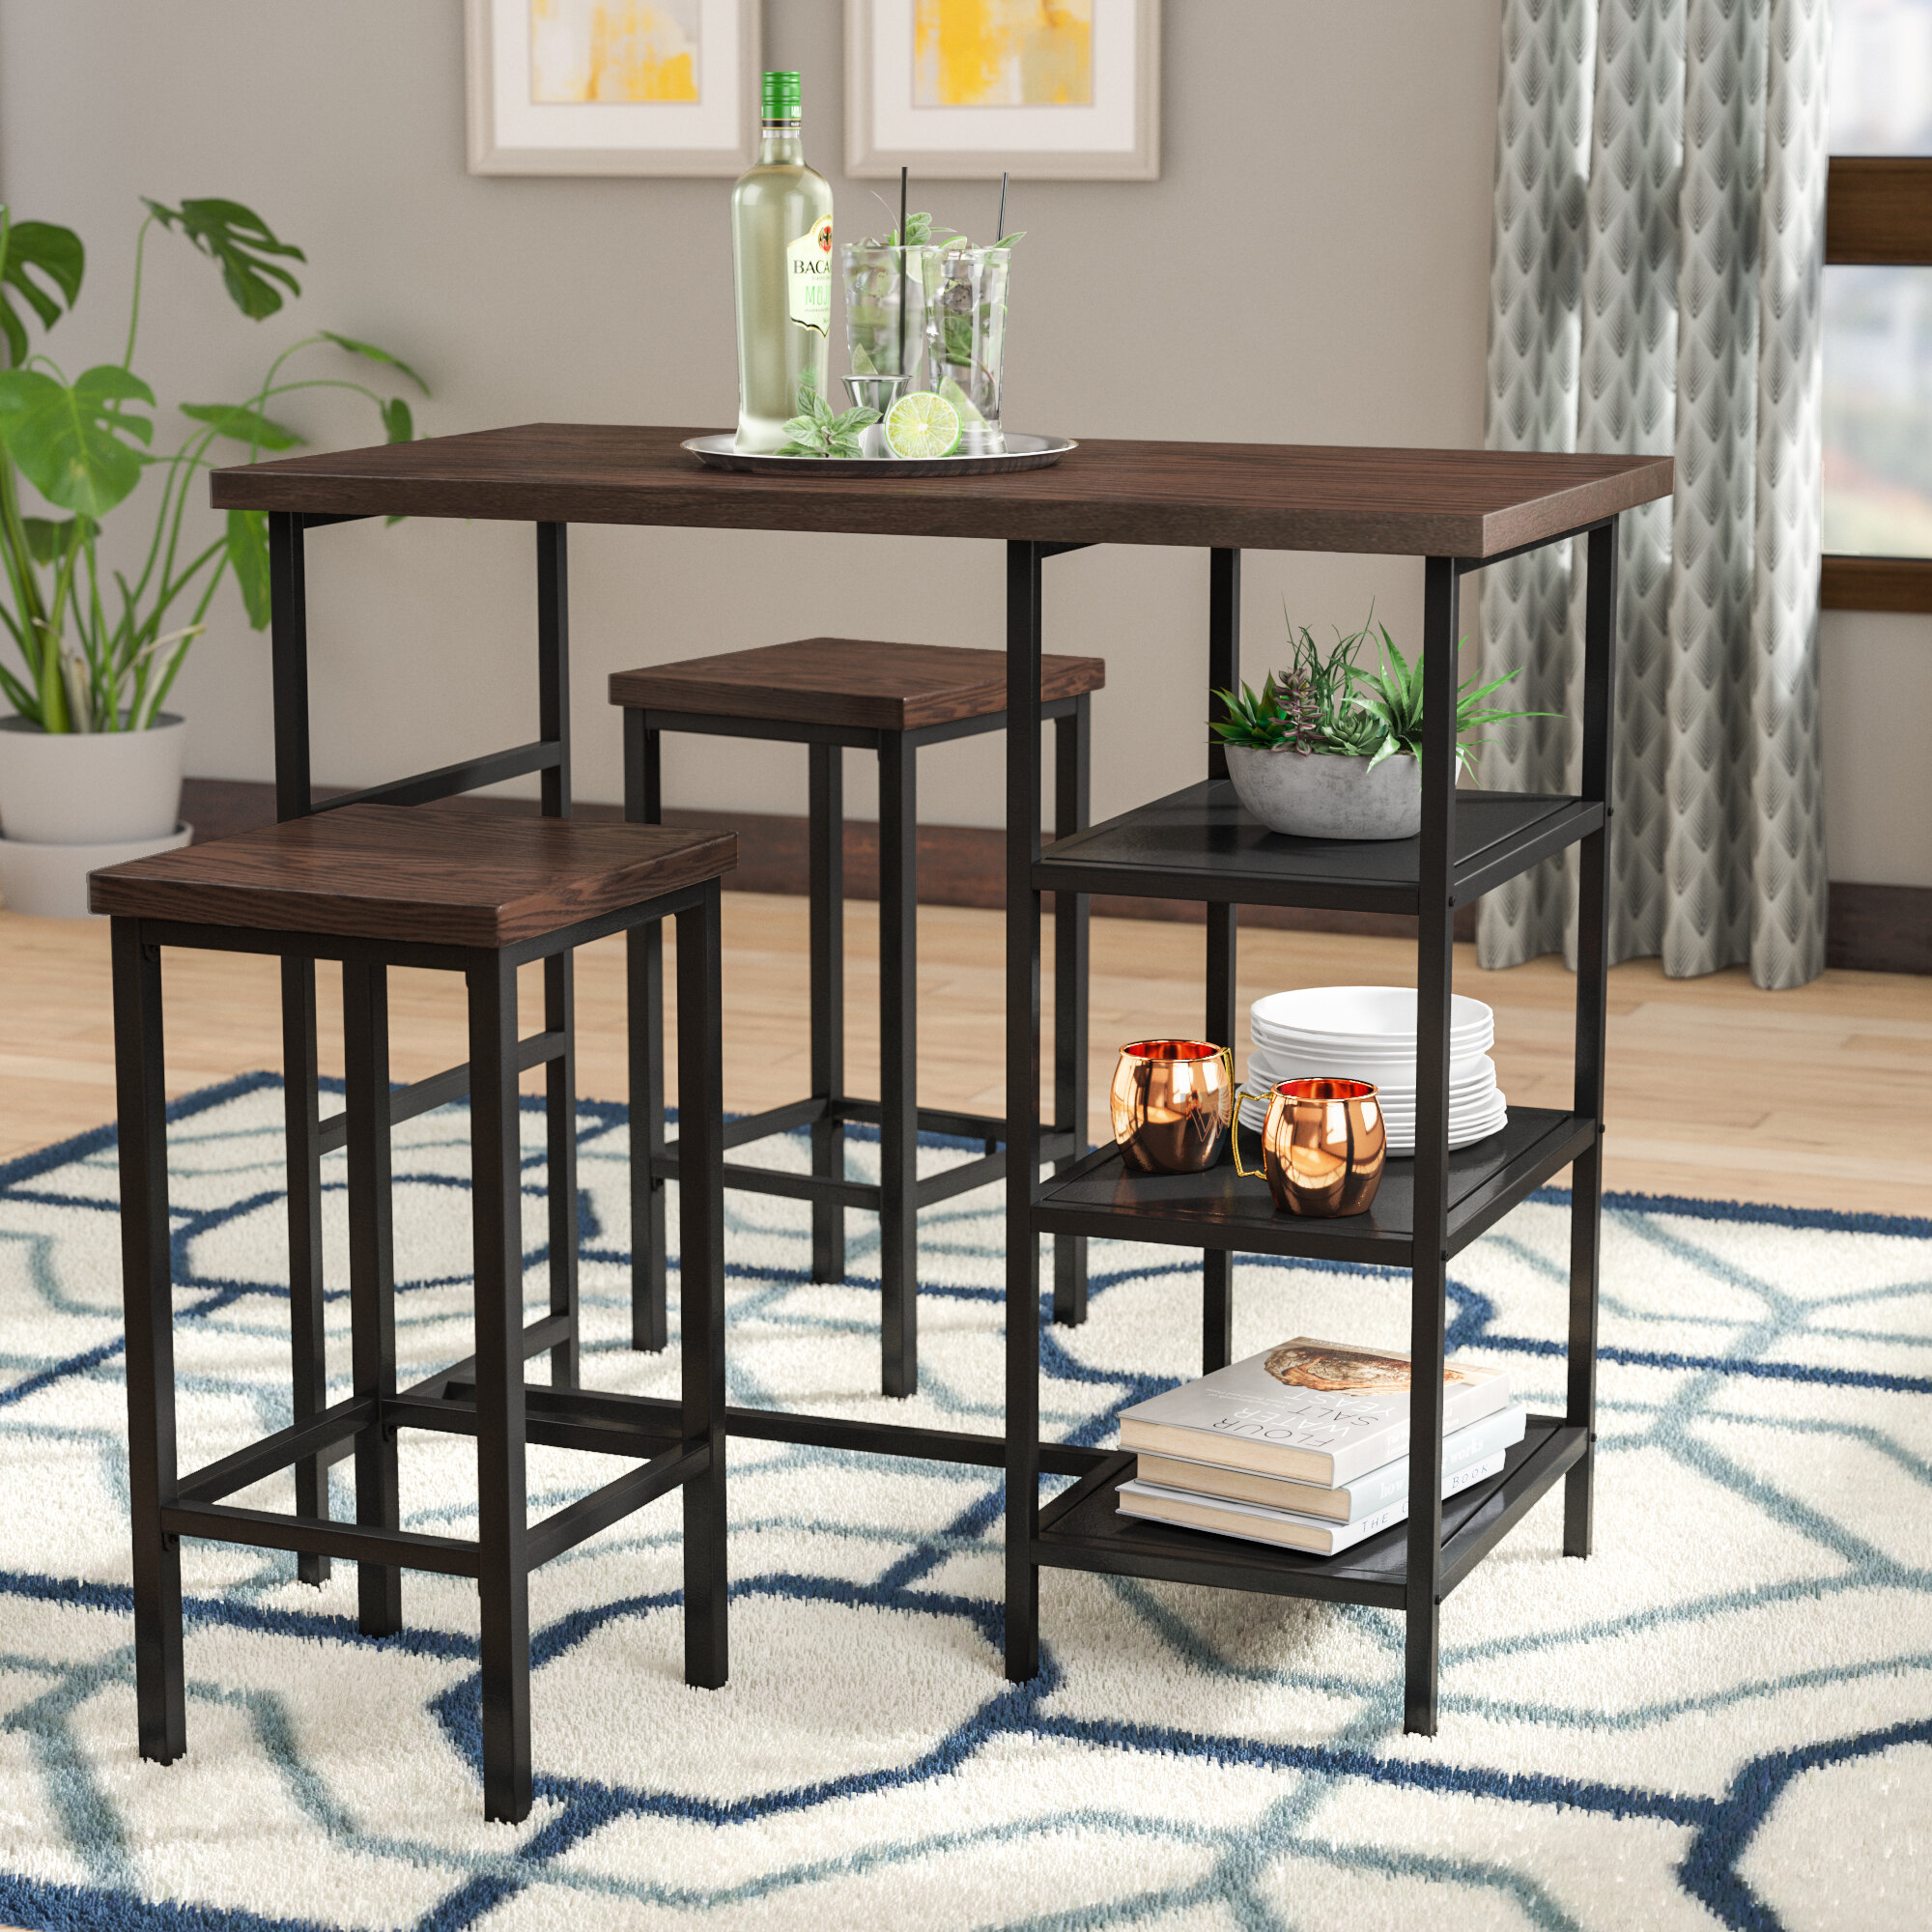 3 Piece Kitchen & Dining Room Sets You\'ll Love in 2019 | Wayfair